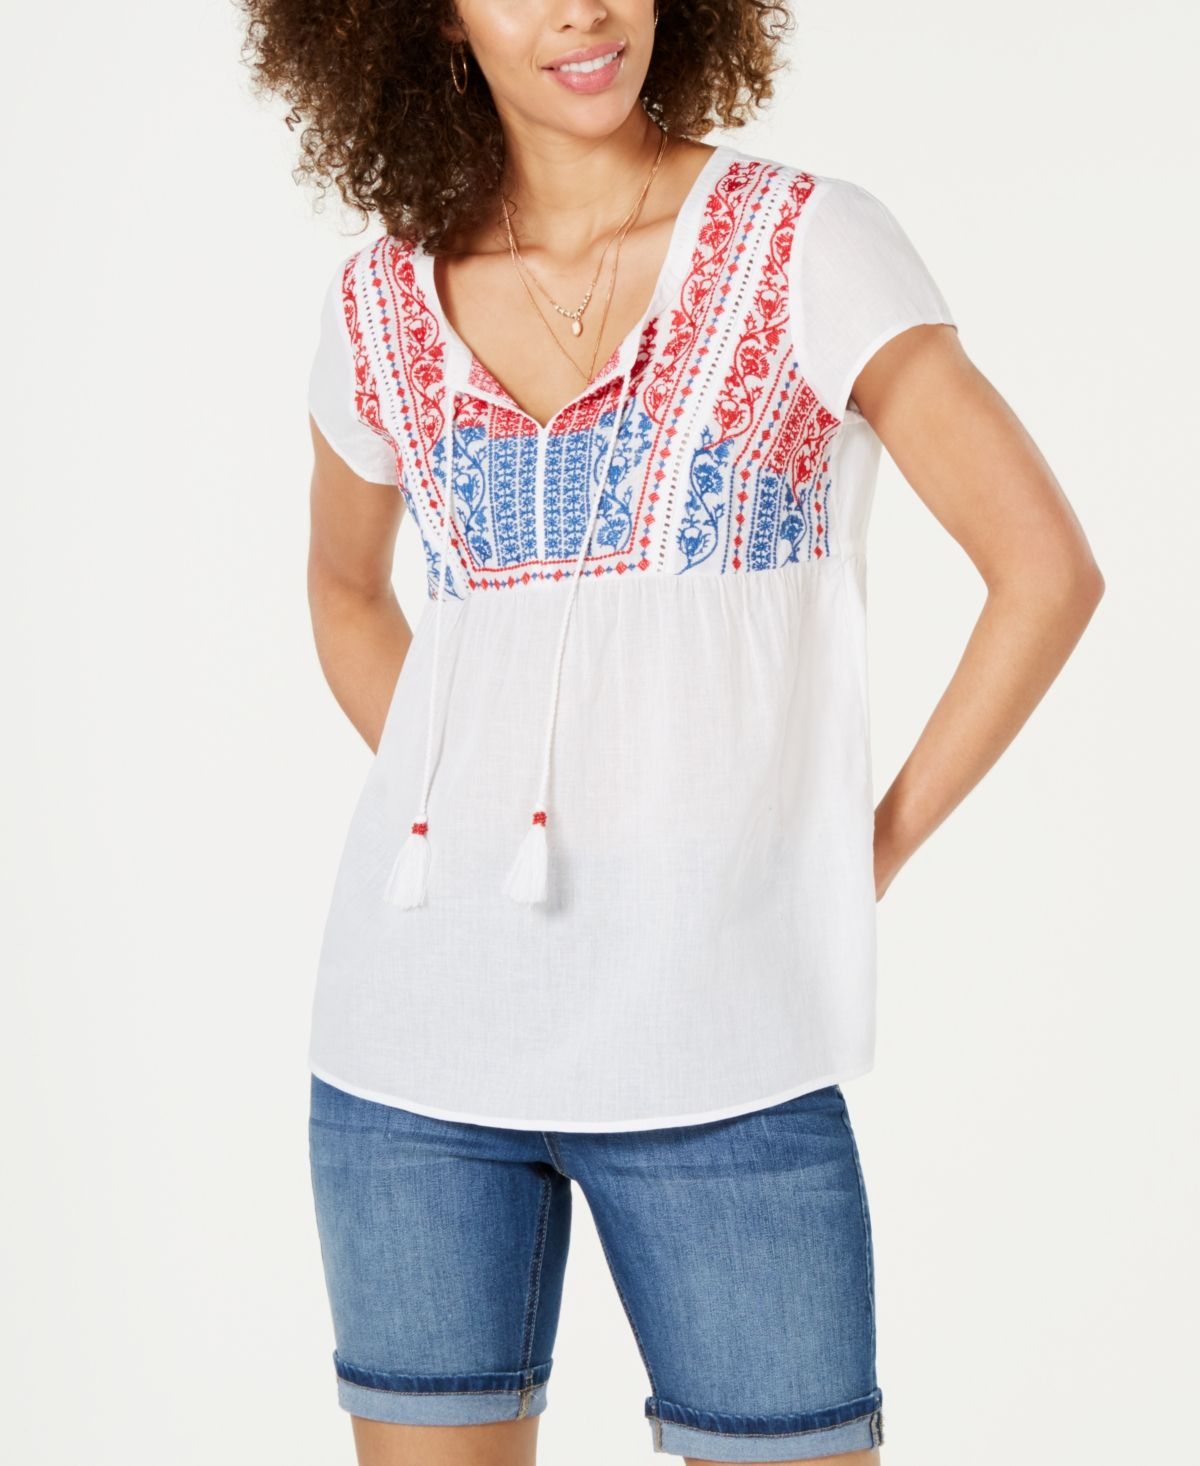 Style & Co Embroidered Tassel Top - Summertime Delight